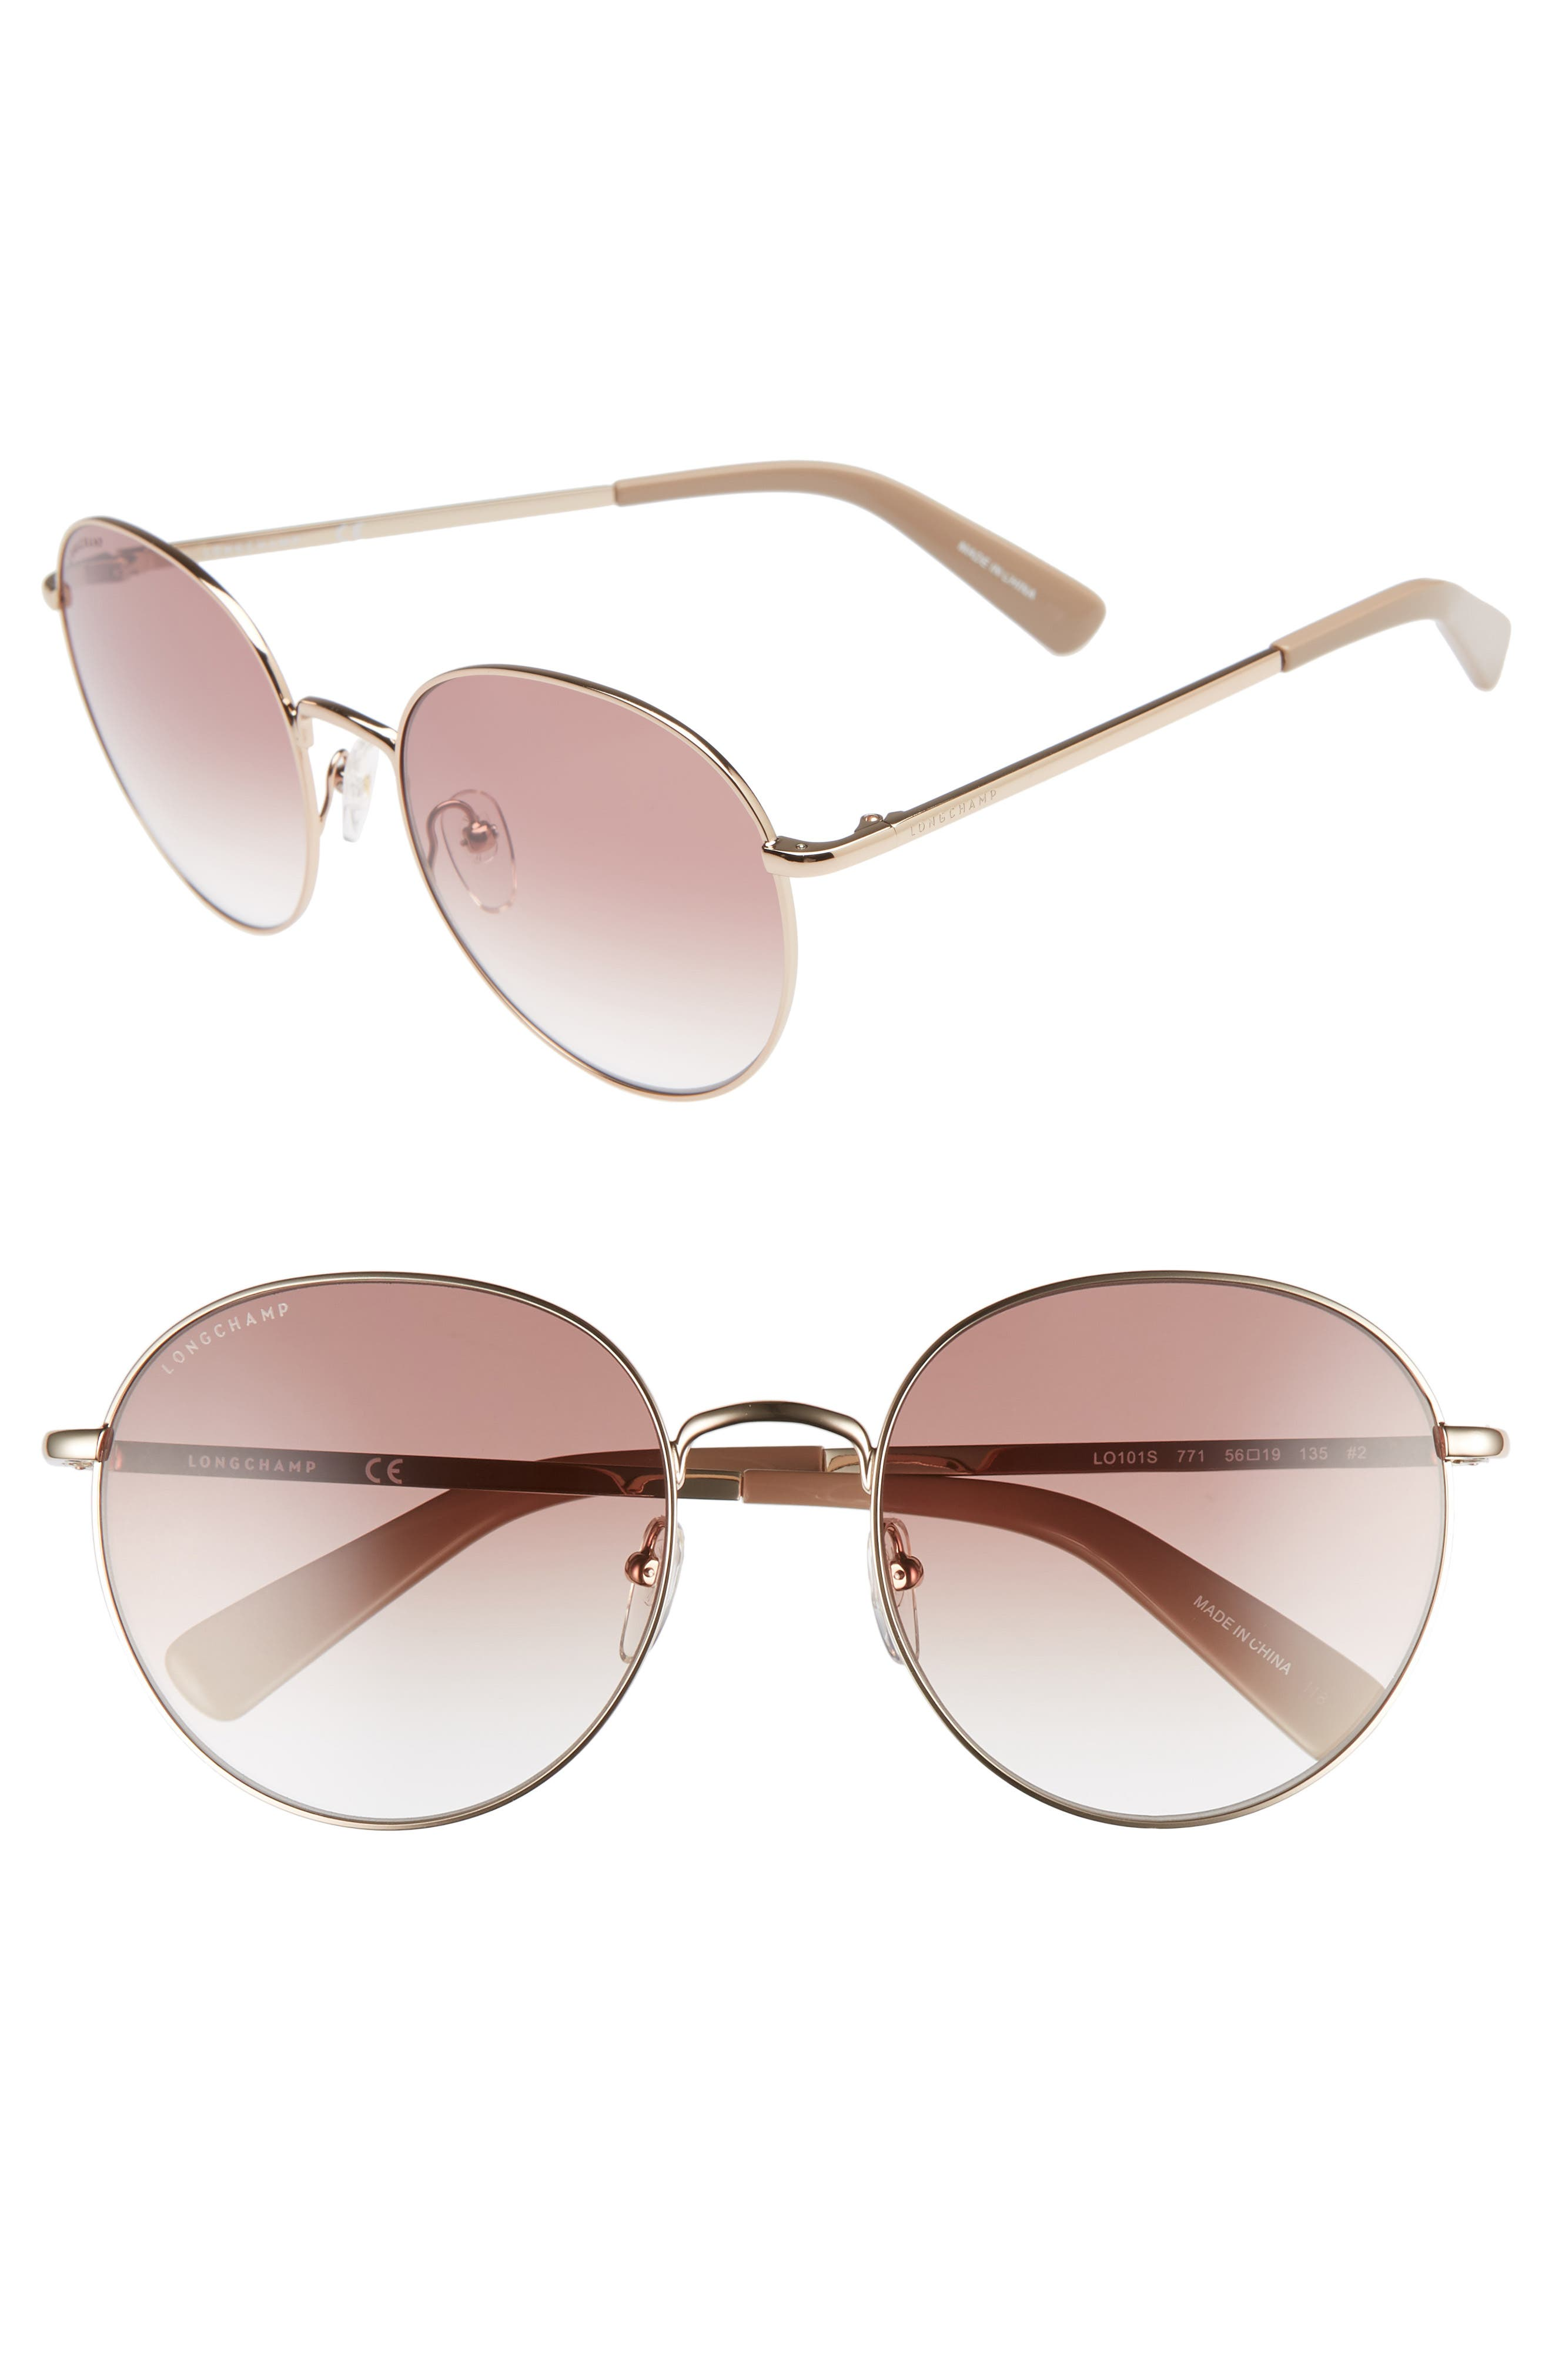 56mm Round Sunglasses,                         Main,                         color, ROSE GOLD/ NUDE